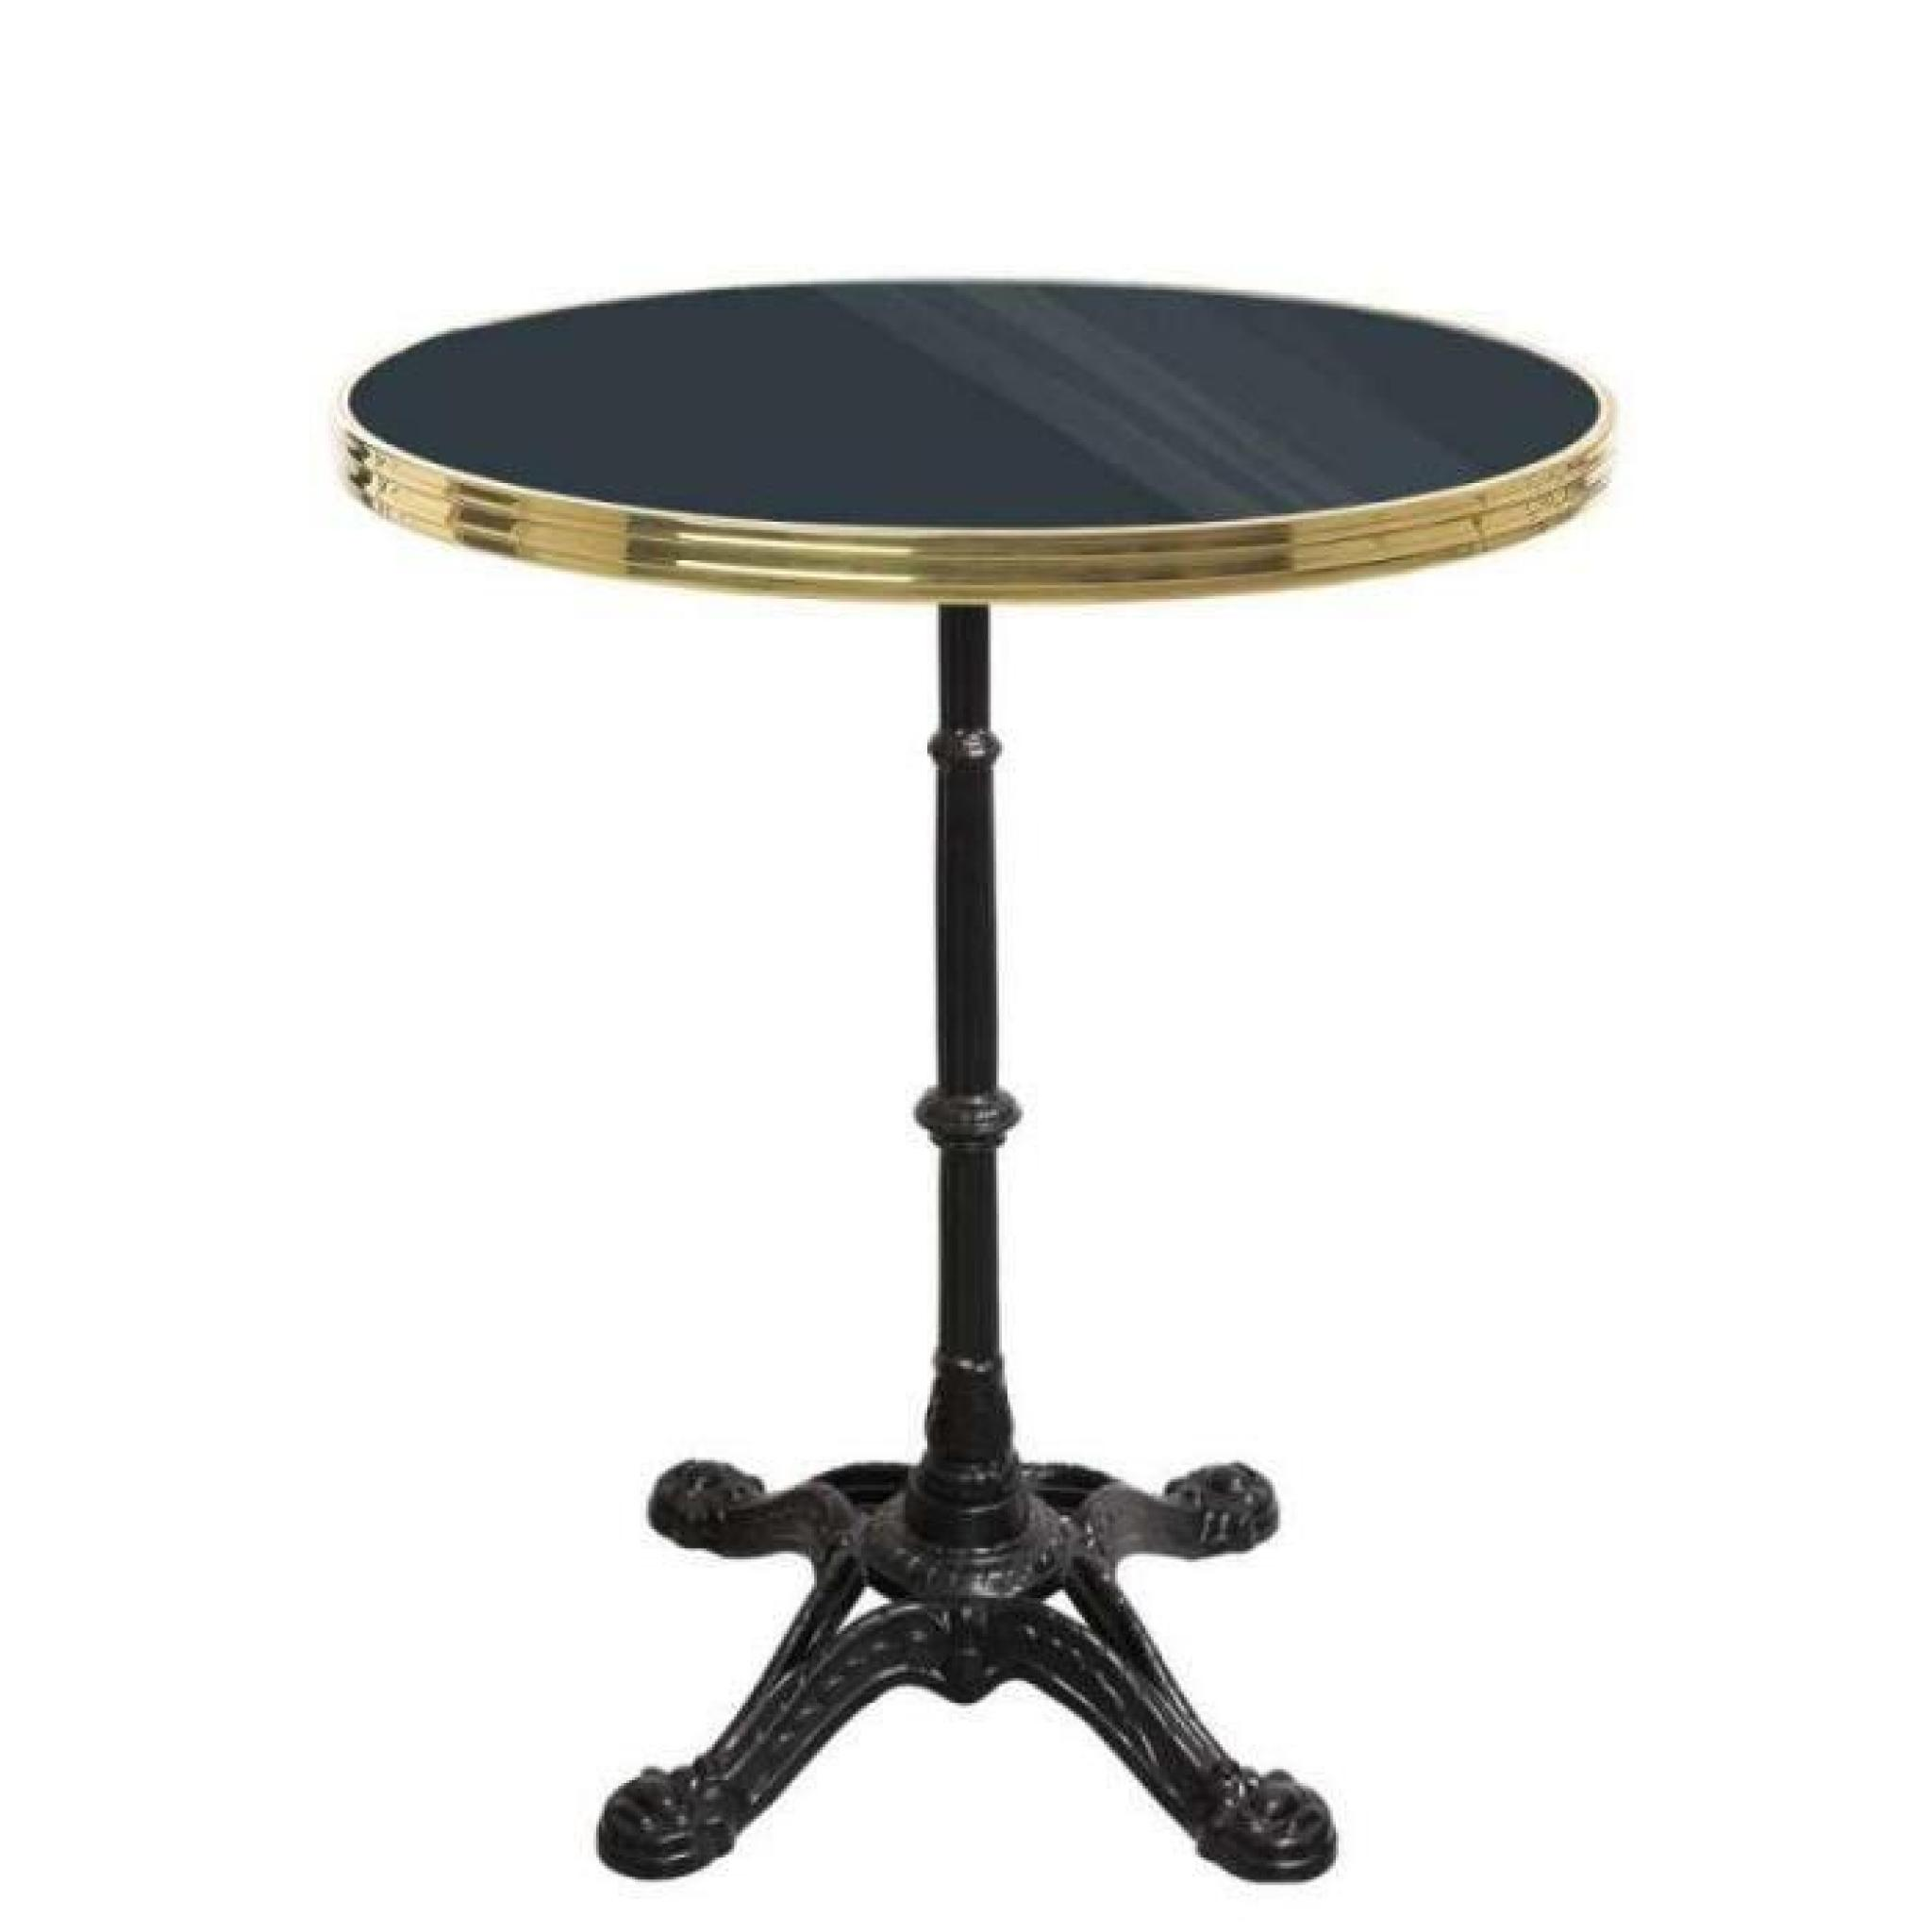 table bistrot ronde noir avec cerclage en laiton pied eiffel 3 branches h70 x d50 cm achat. Black Bedroom Furniture Sets. Home Design Ideas